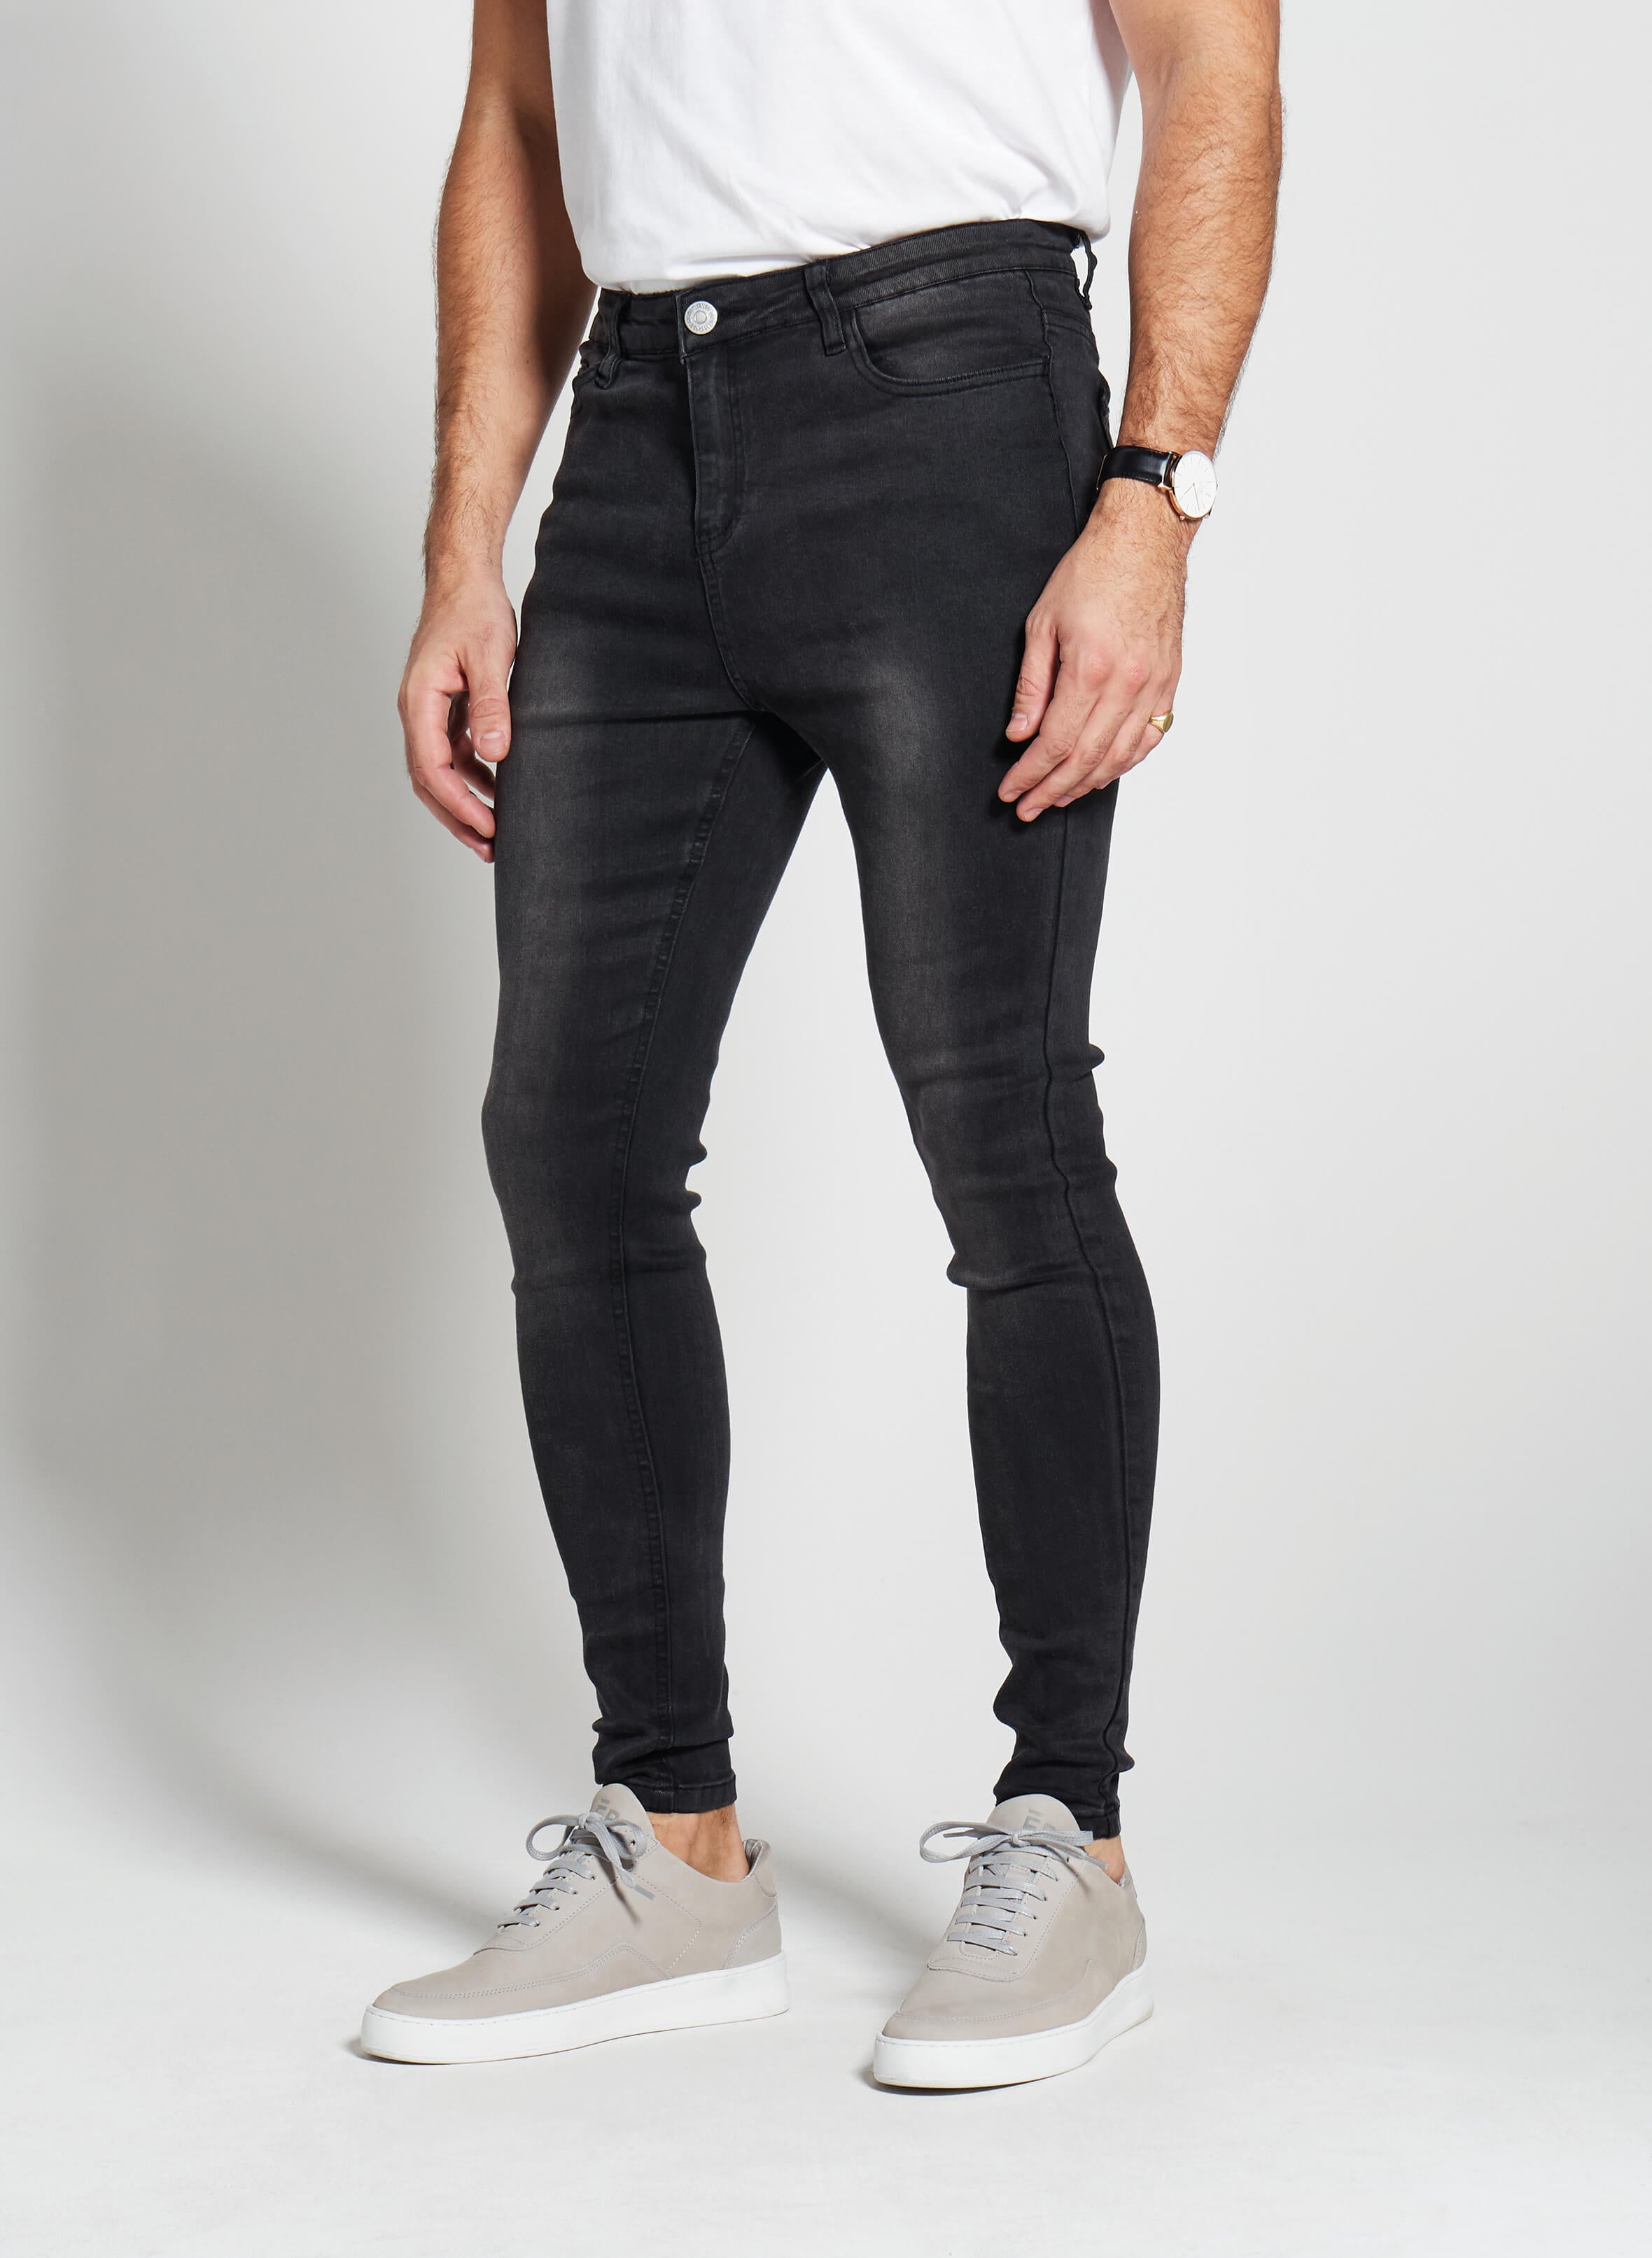 Denim Only® Spray On Jeans - Washed Black - Spray On